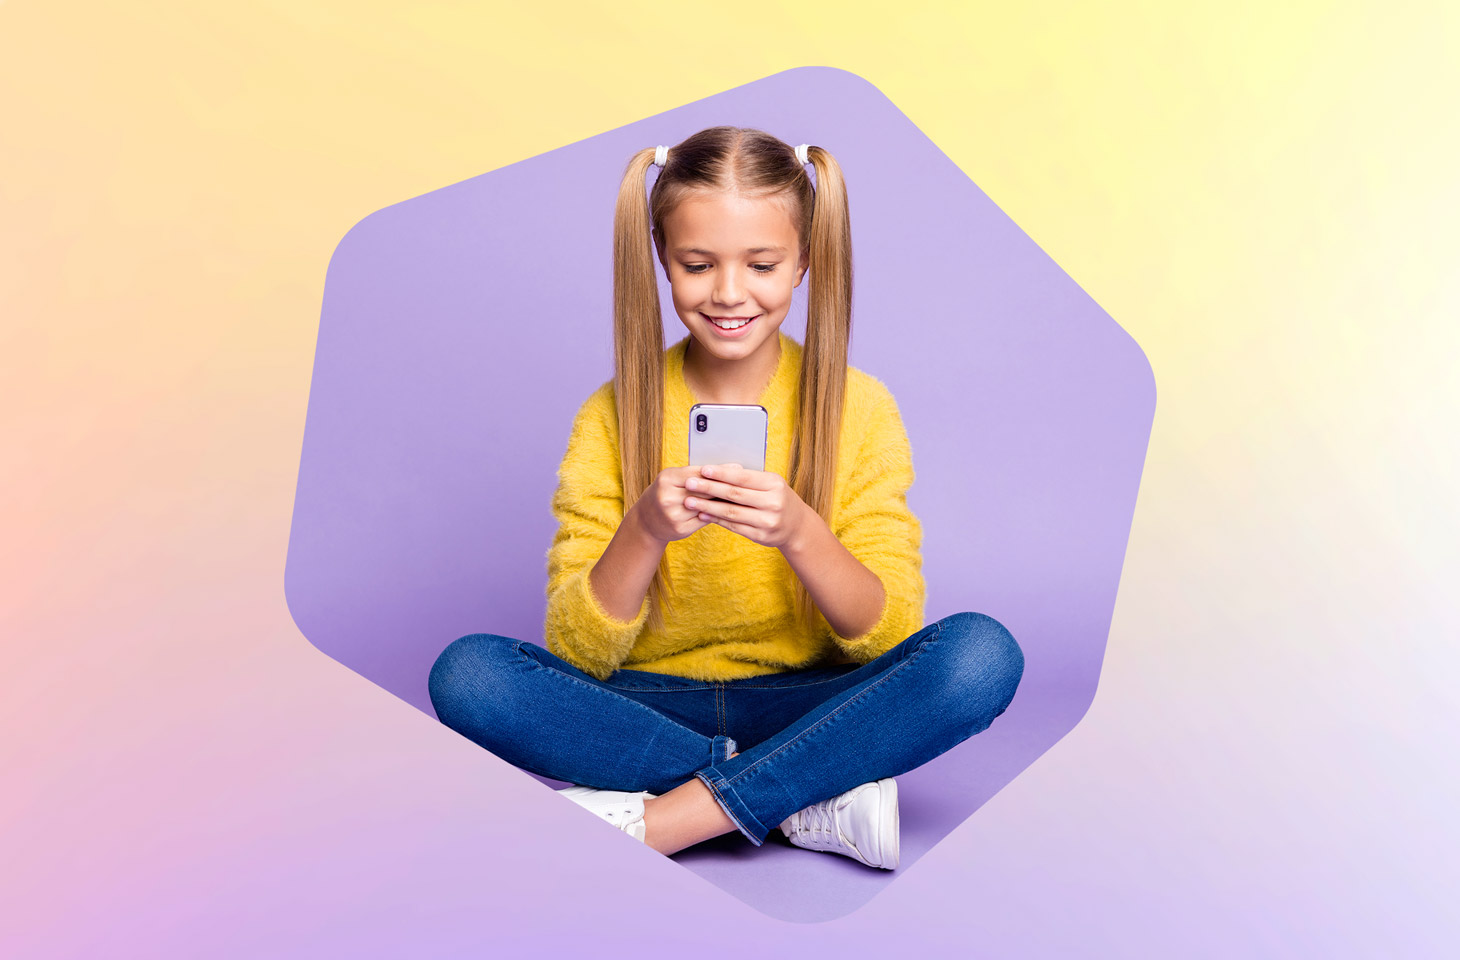 Want to buy your kid a smartphone and undecided about the type? Some pros and cons of smartphones for kids and how to choose a device